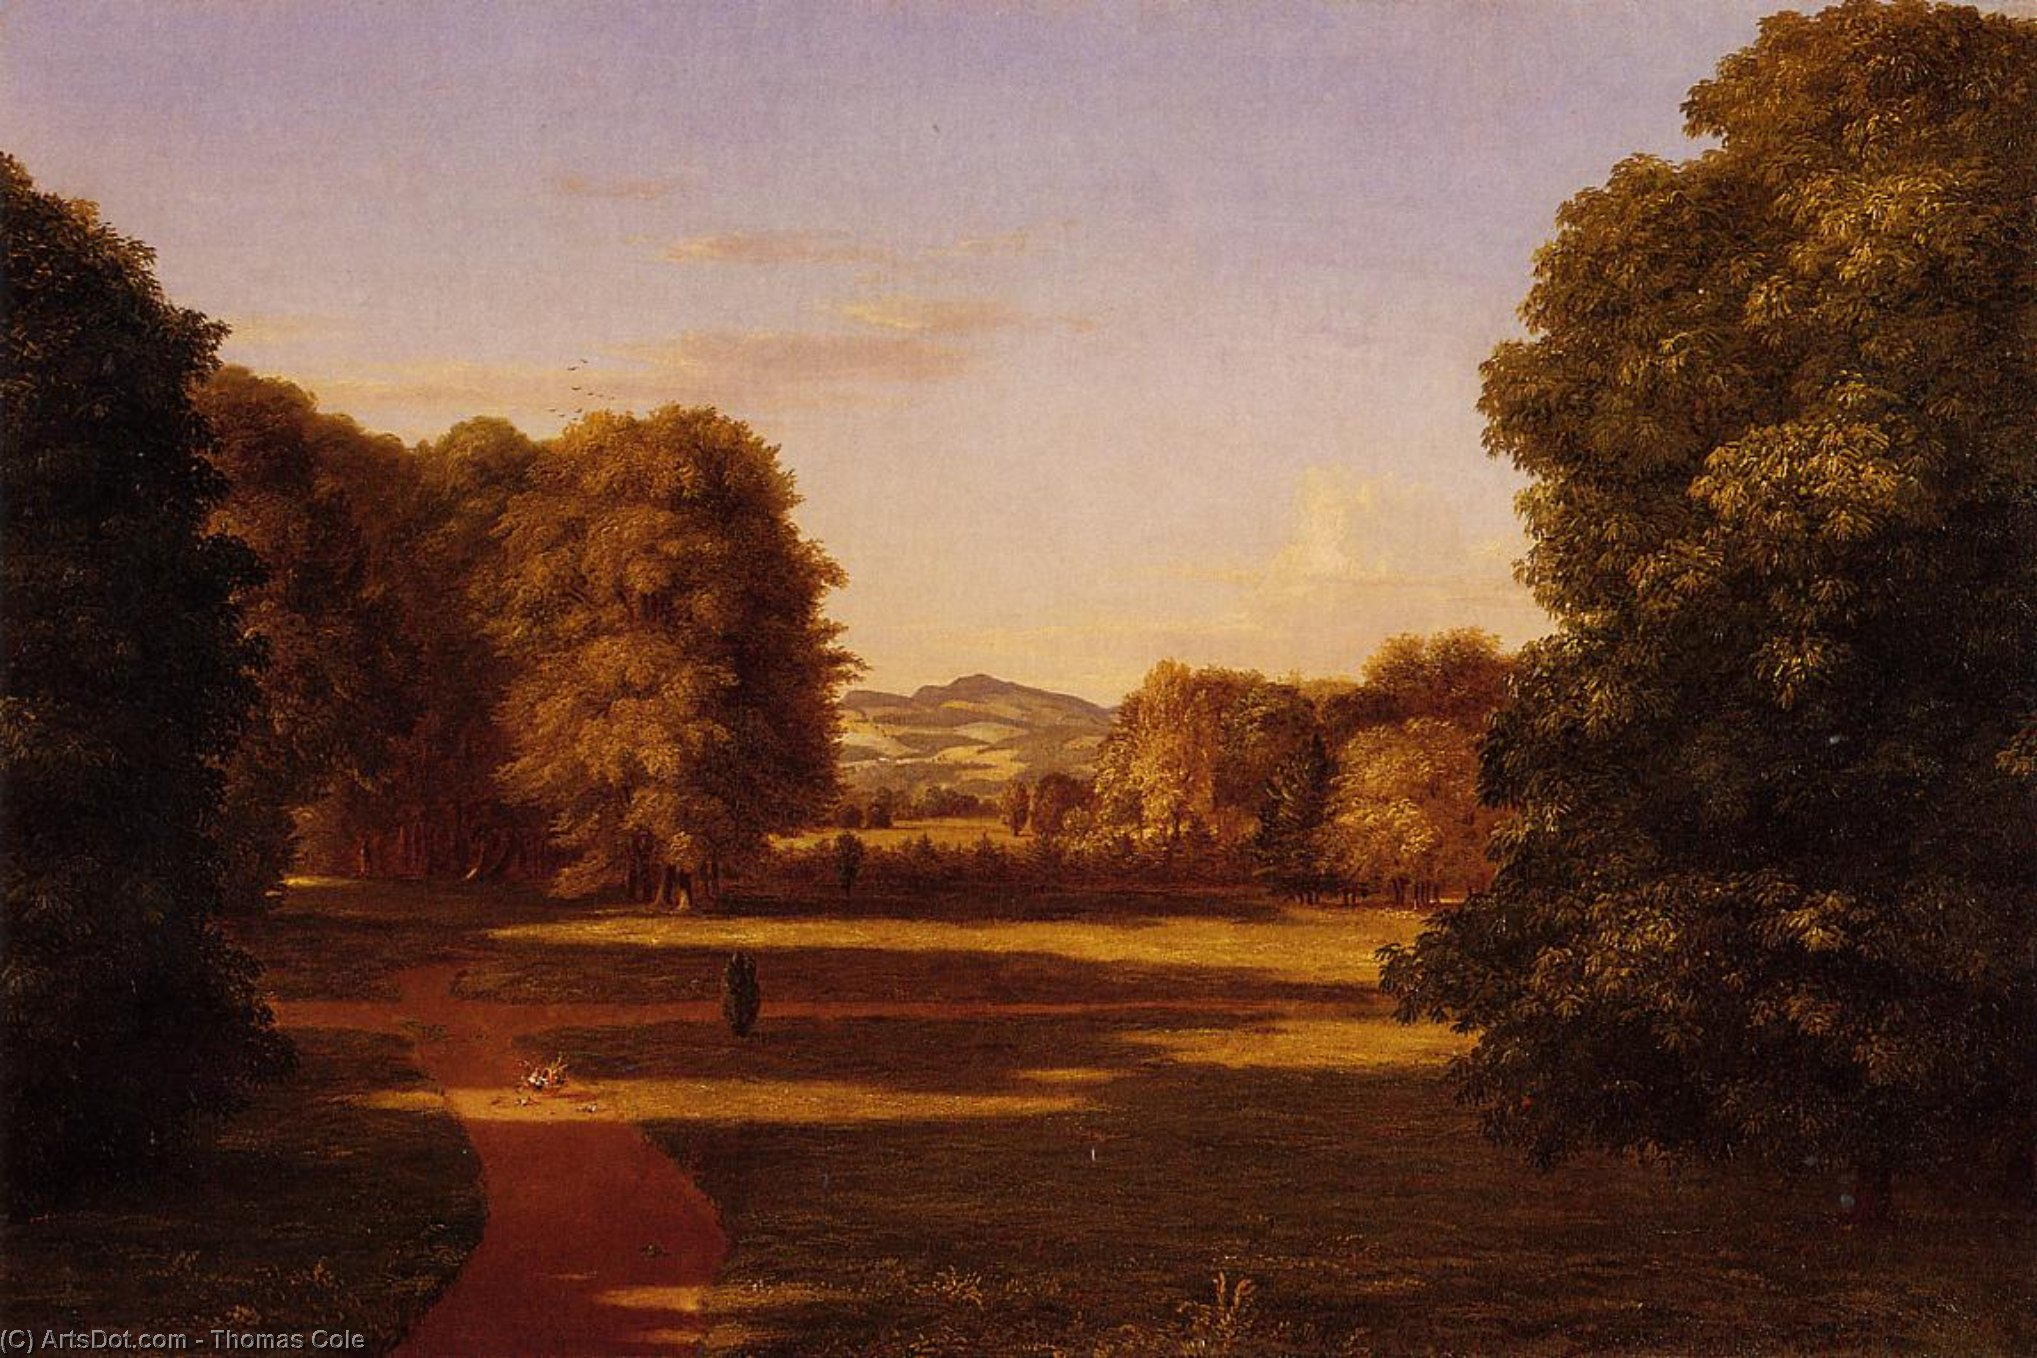 The Gardens of the Van Rensselaer Manor House, Oil On Canvas by Thomas Cole (1801-1848, United Kingdom)